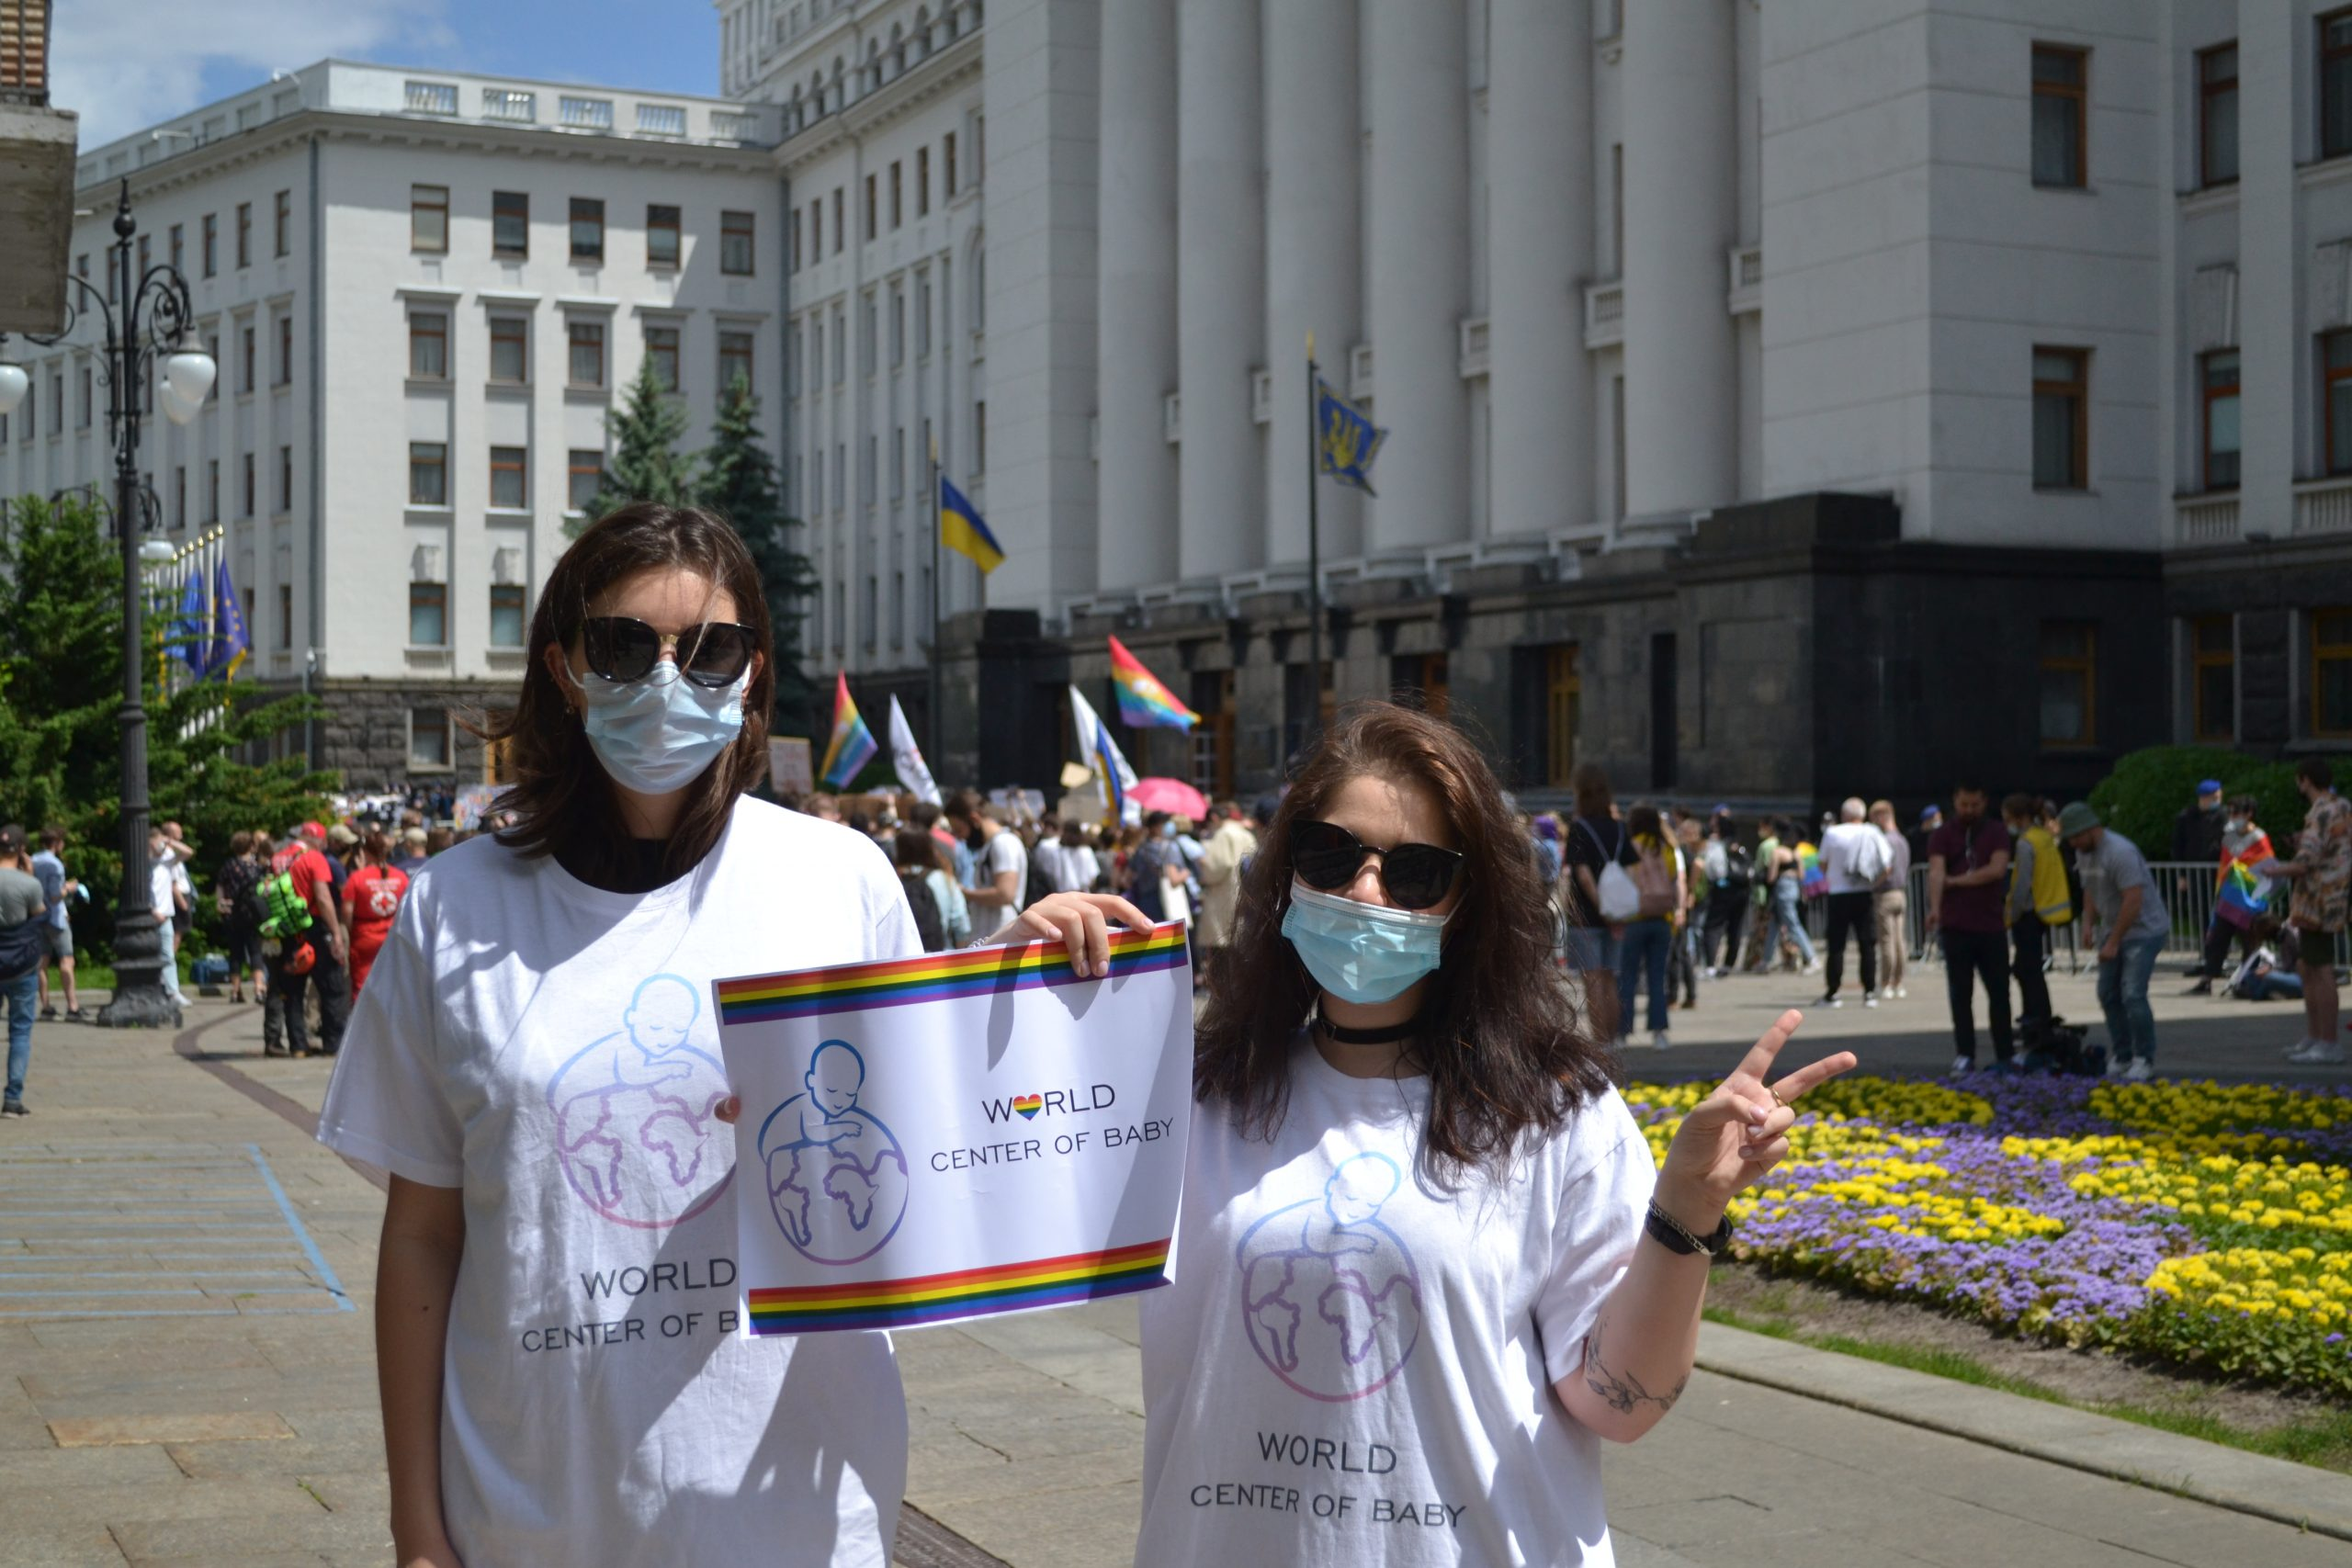 Same-Sex Equality Rally in Kyiv: Demands for Rights